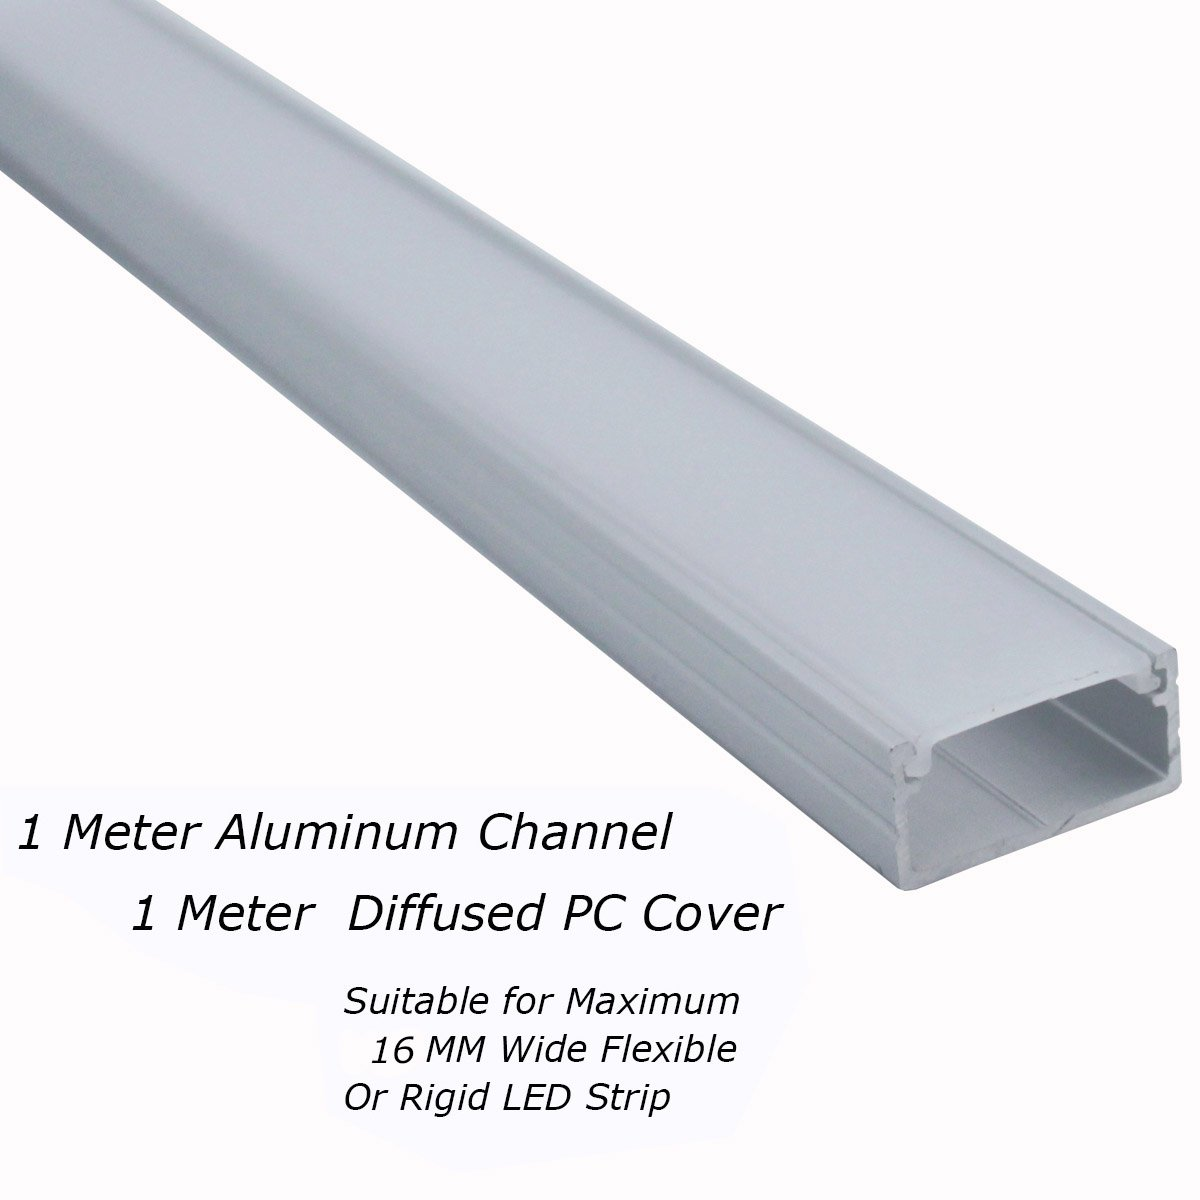 Aluminum Channels U Shape Extrusion 1 Meter//3 3 FT for